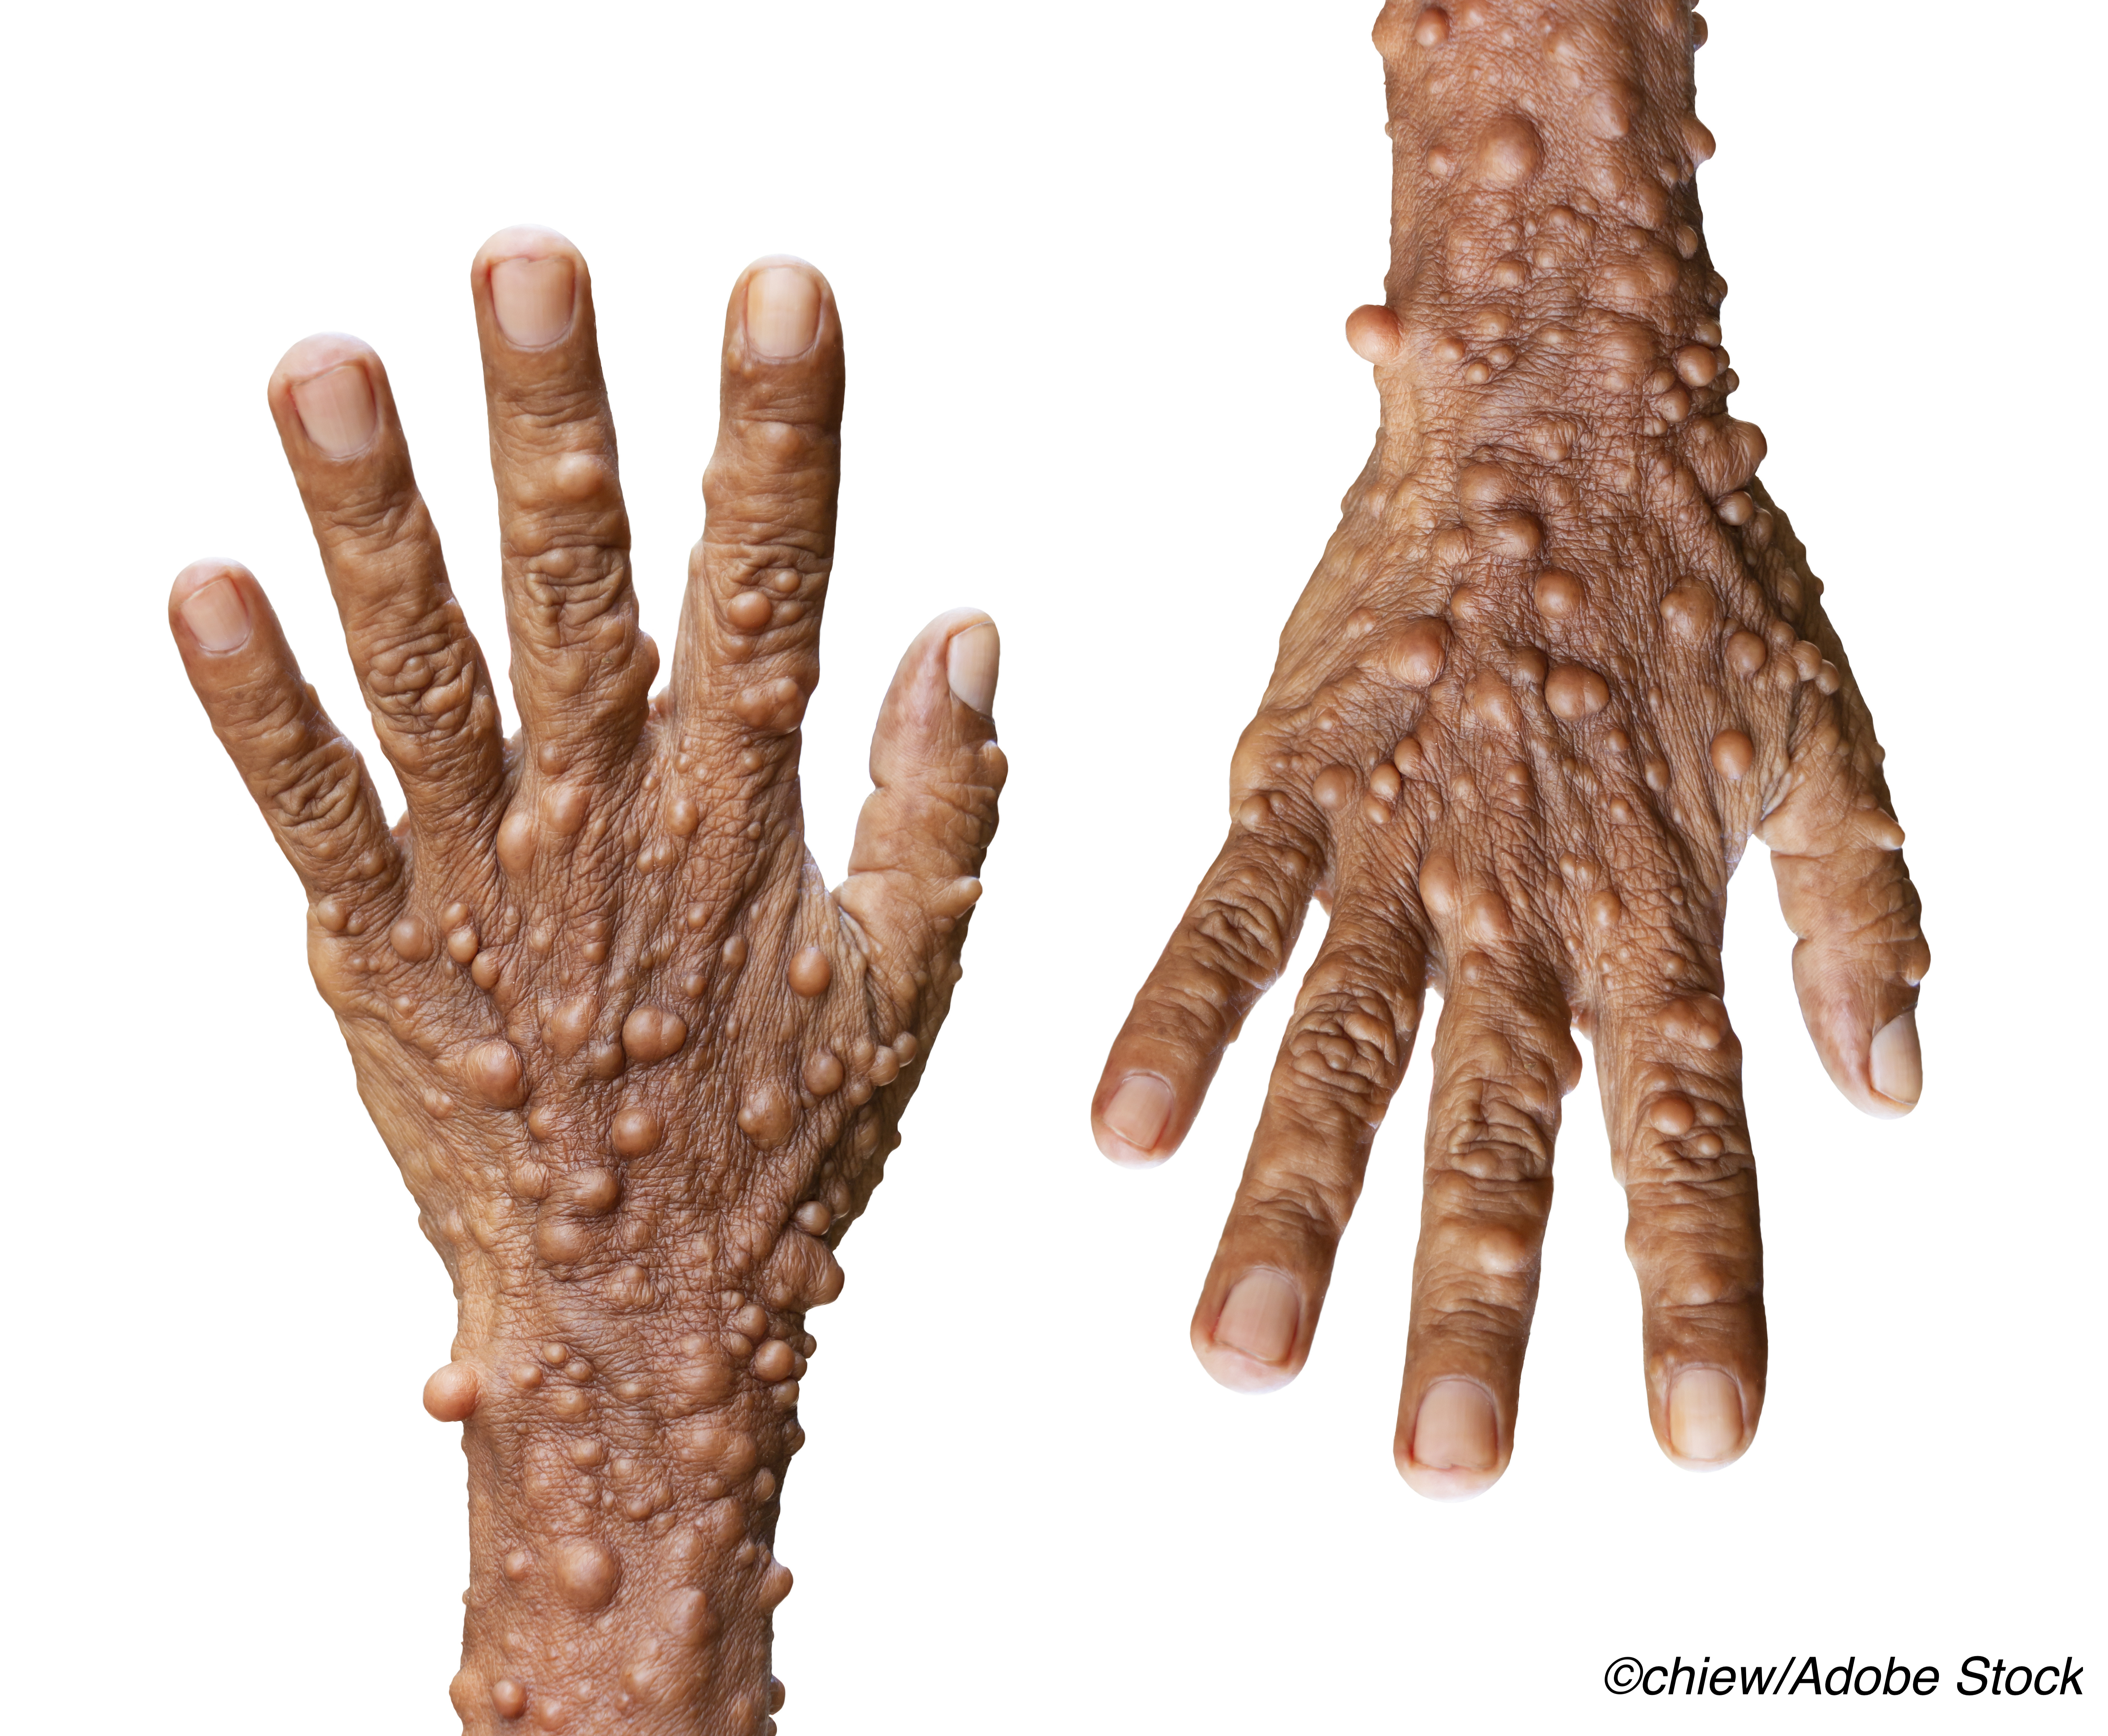 Neurofibromatosis Type 1: Frequent, Early Neoplasms Associated with Worse Outcomes